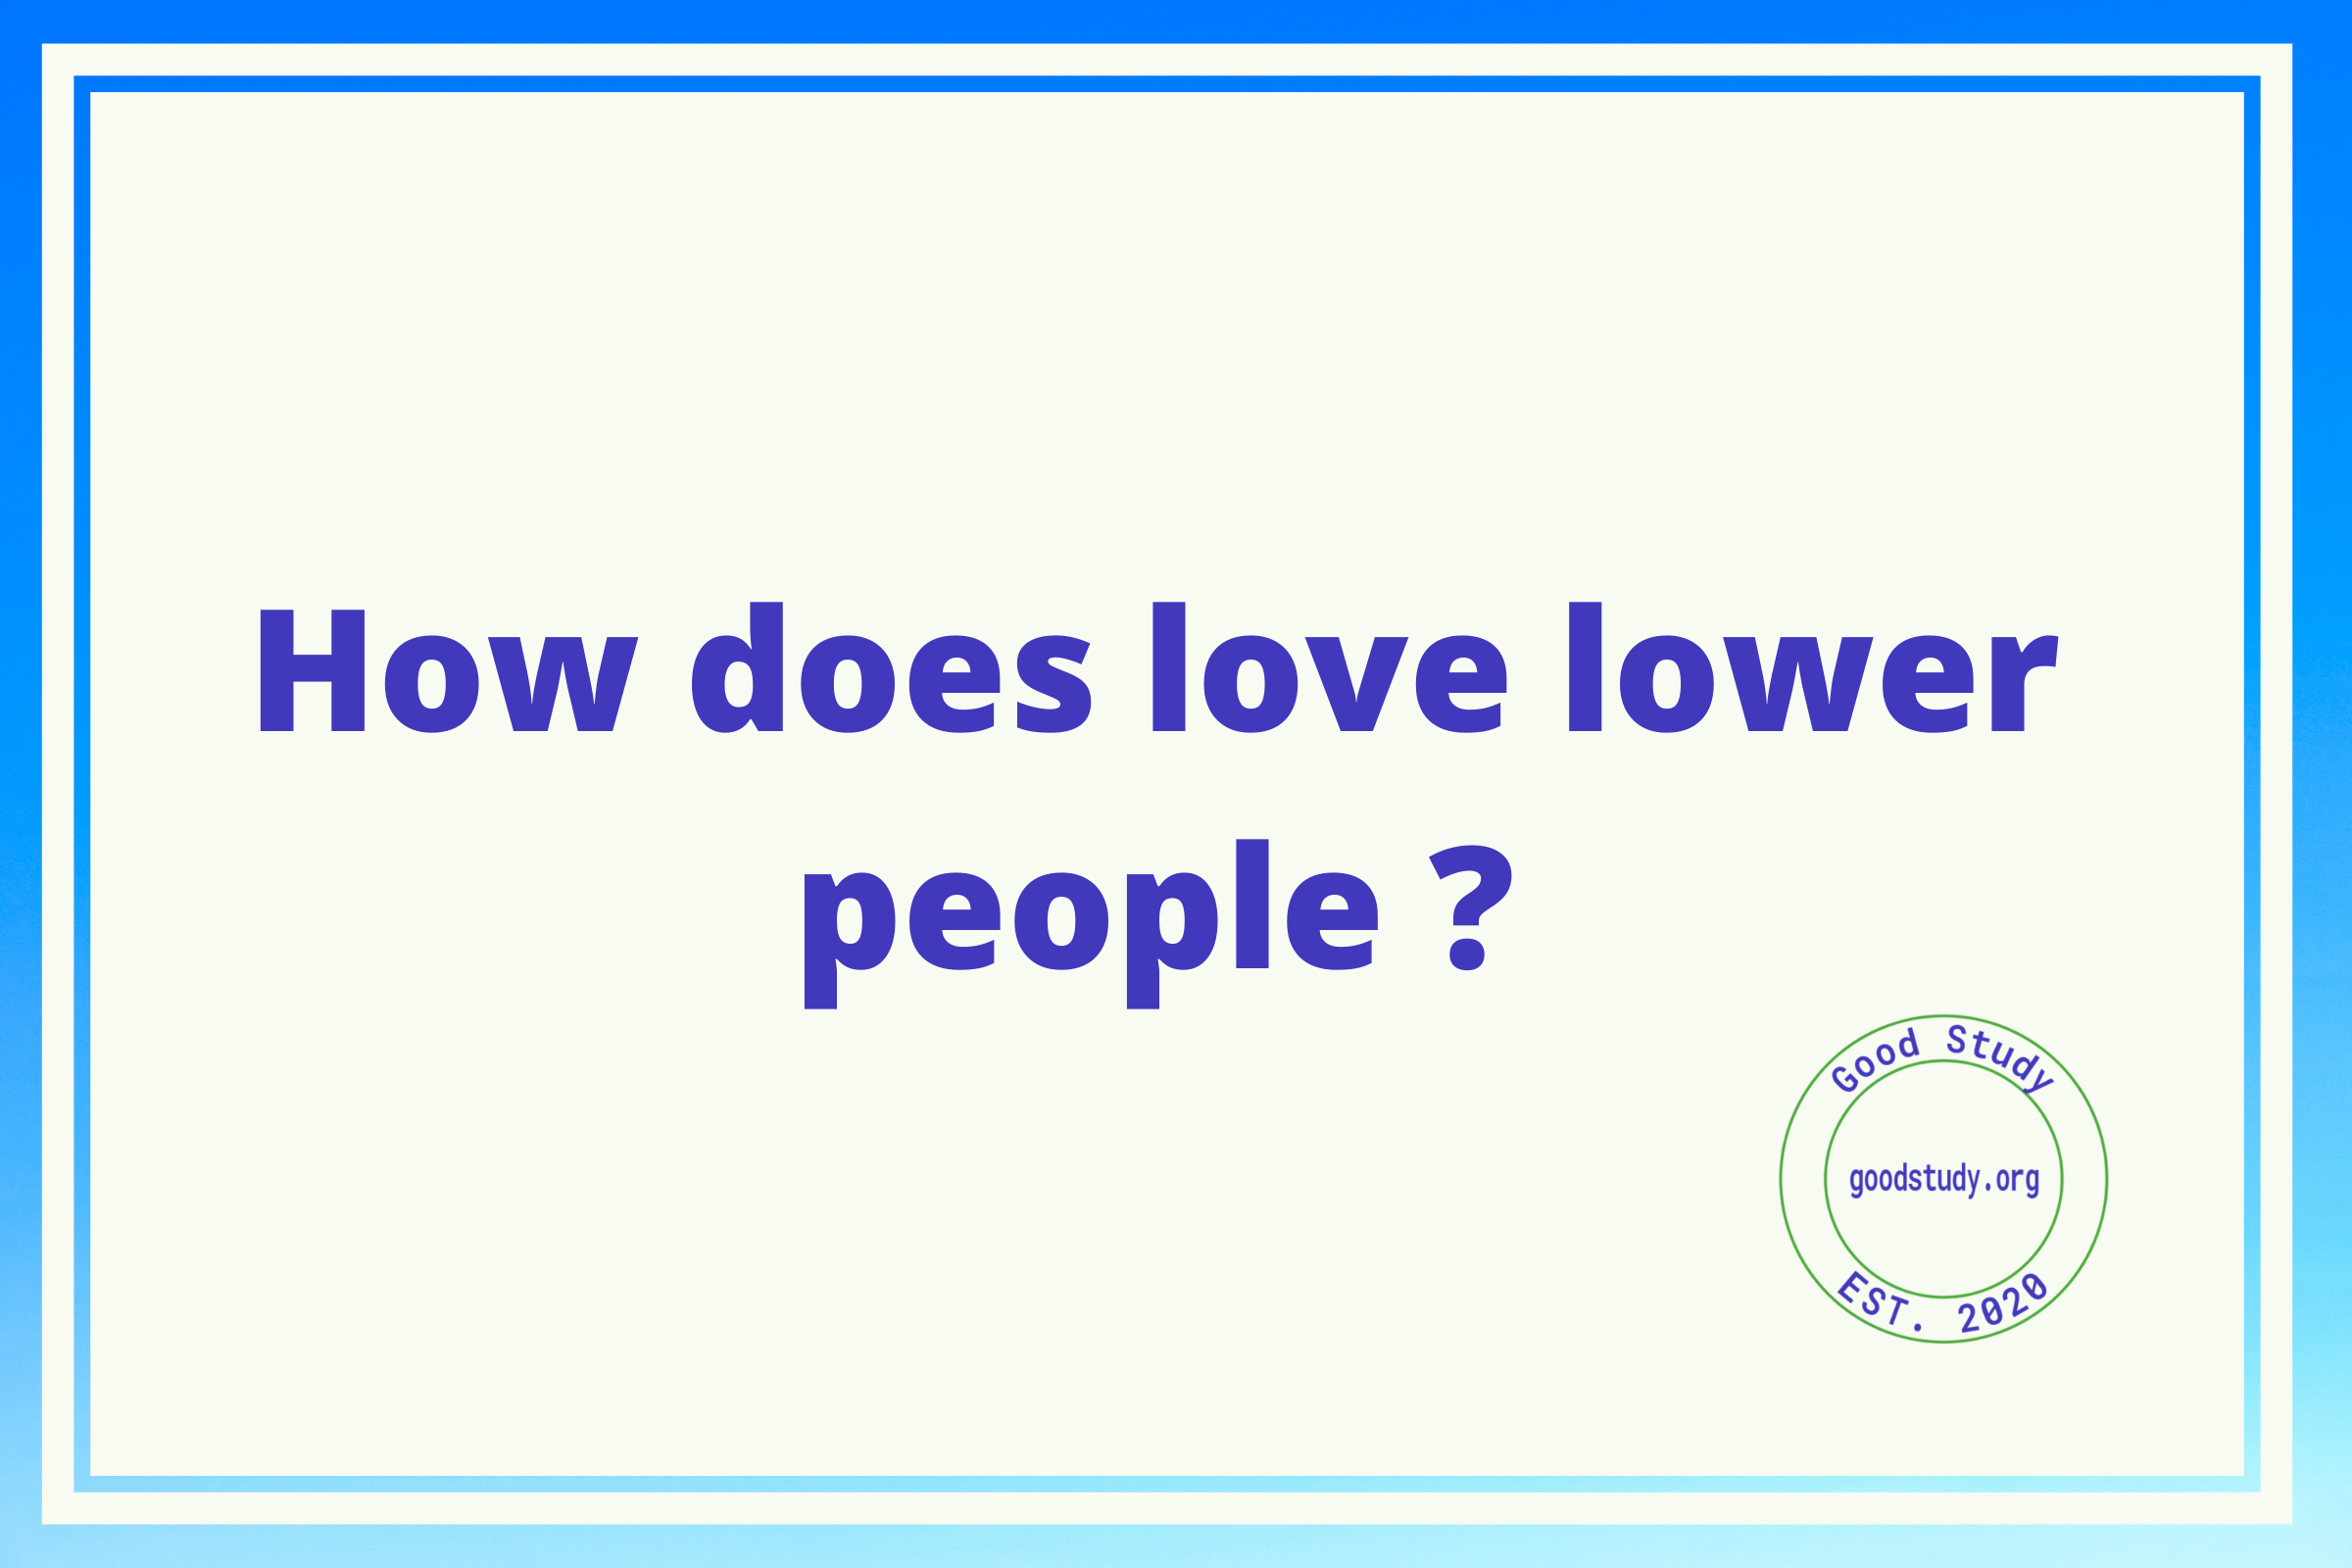 love lower people